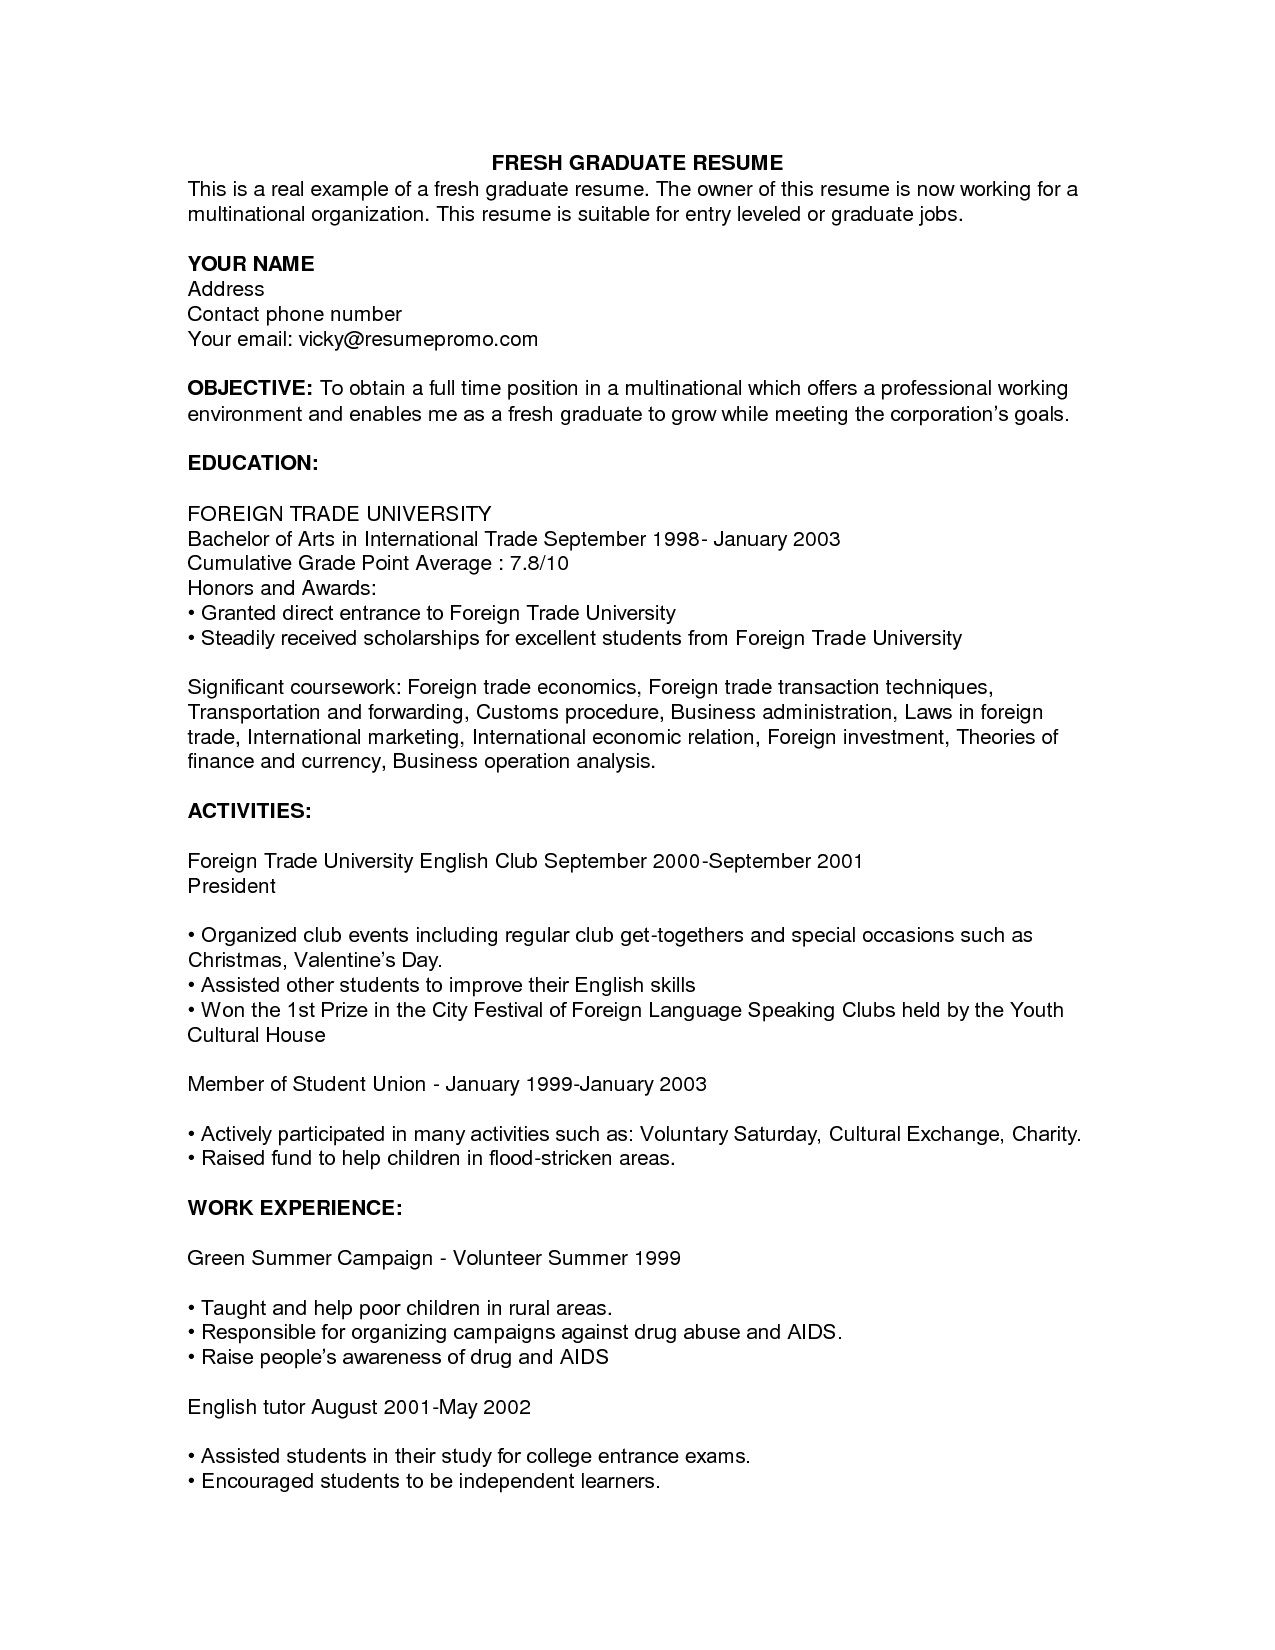 How To Write A Resume Objective Example Of Resume For Fresh Graduate  Httpjobresumesample